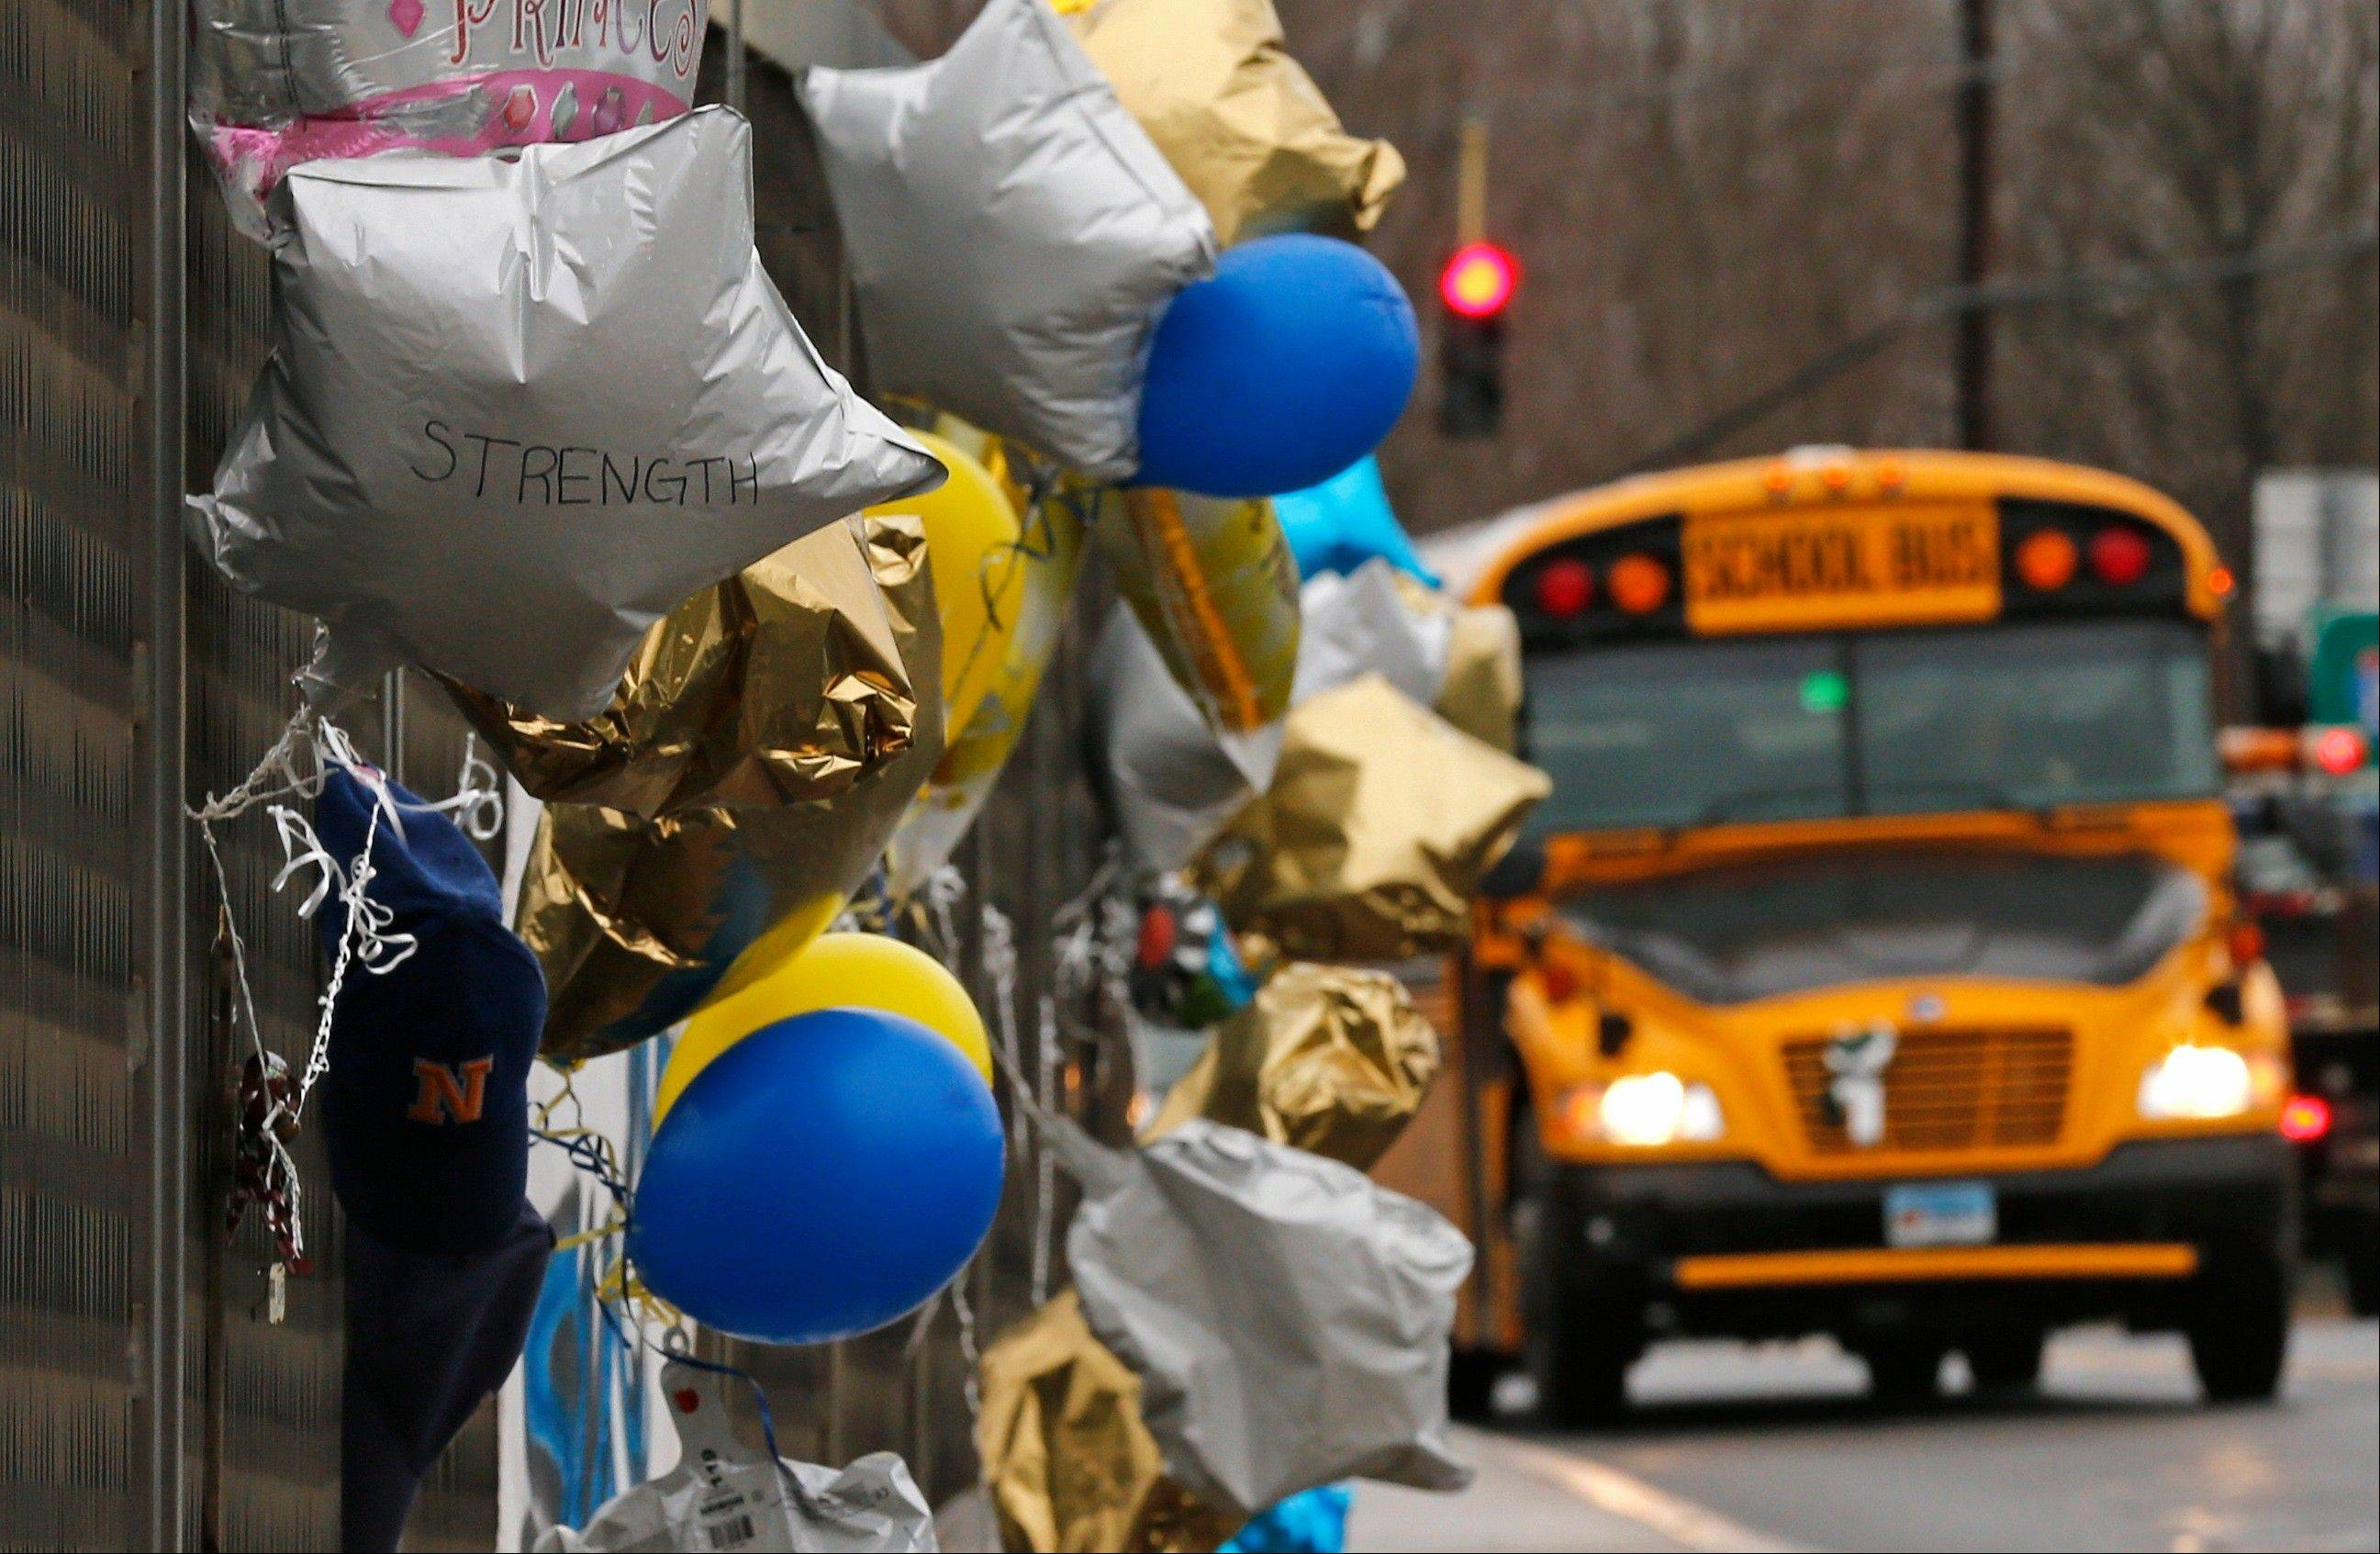 A school bus rolls toward a memorial for victims of the school shooting in Newtown, Conn., Tuesday, Dec. 18, 2012. Classes resume Tuesday for Newtown schools except